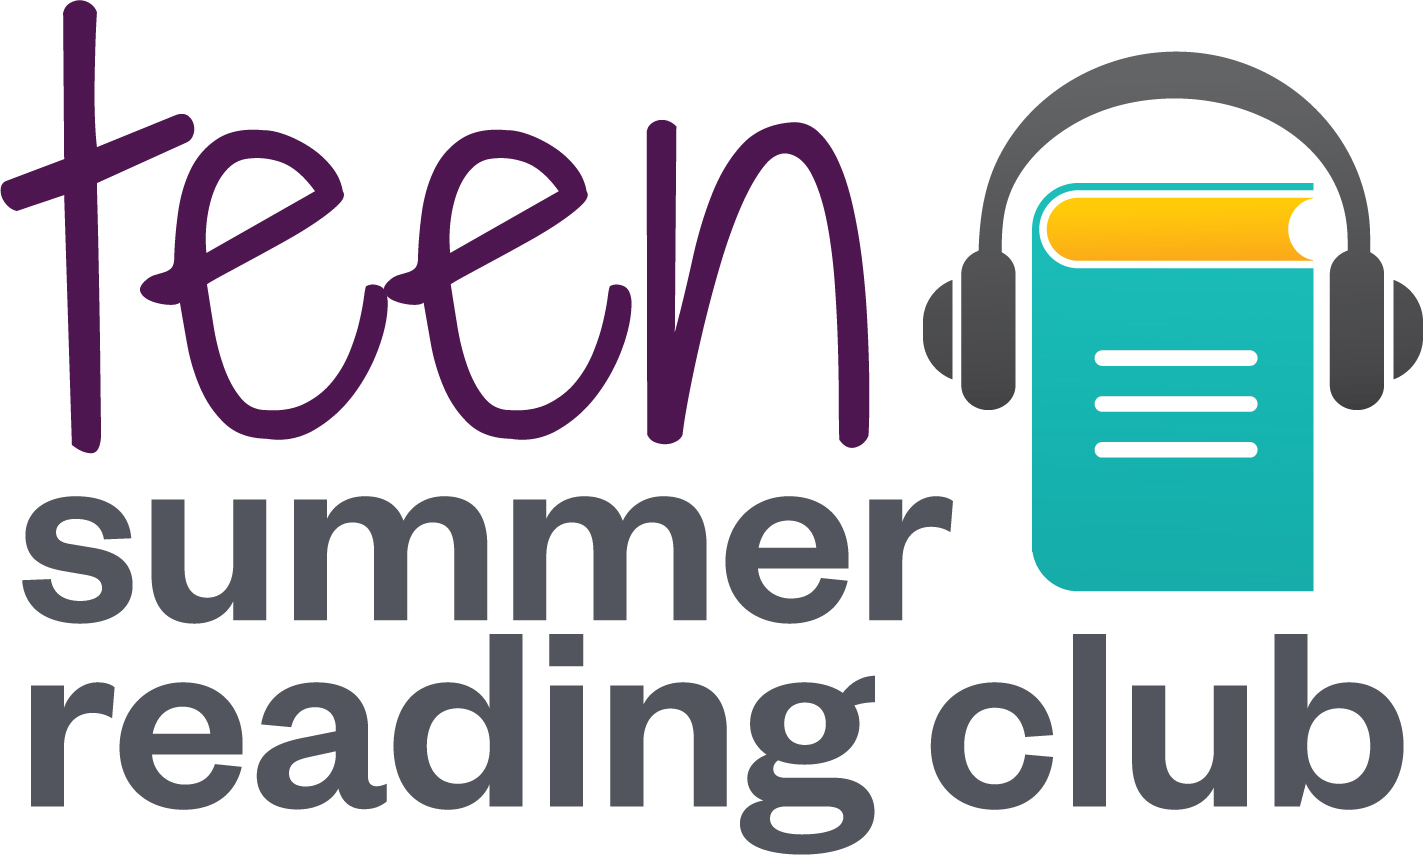 Teen Summer Reading Club logo